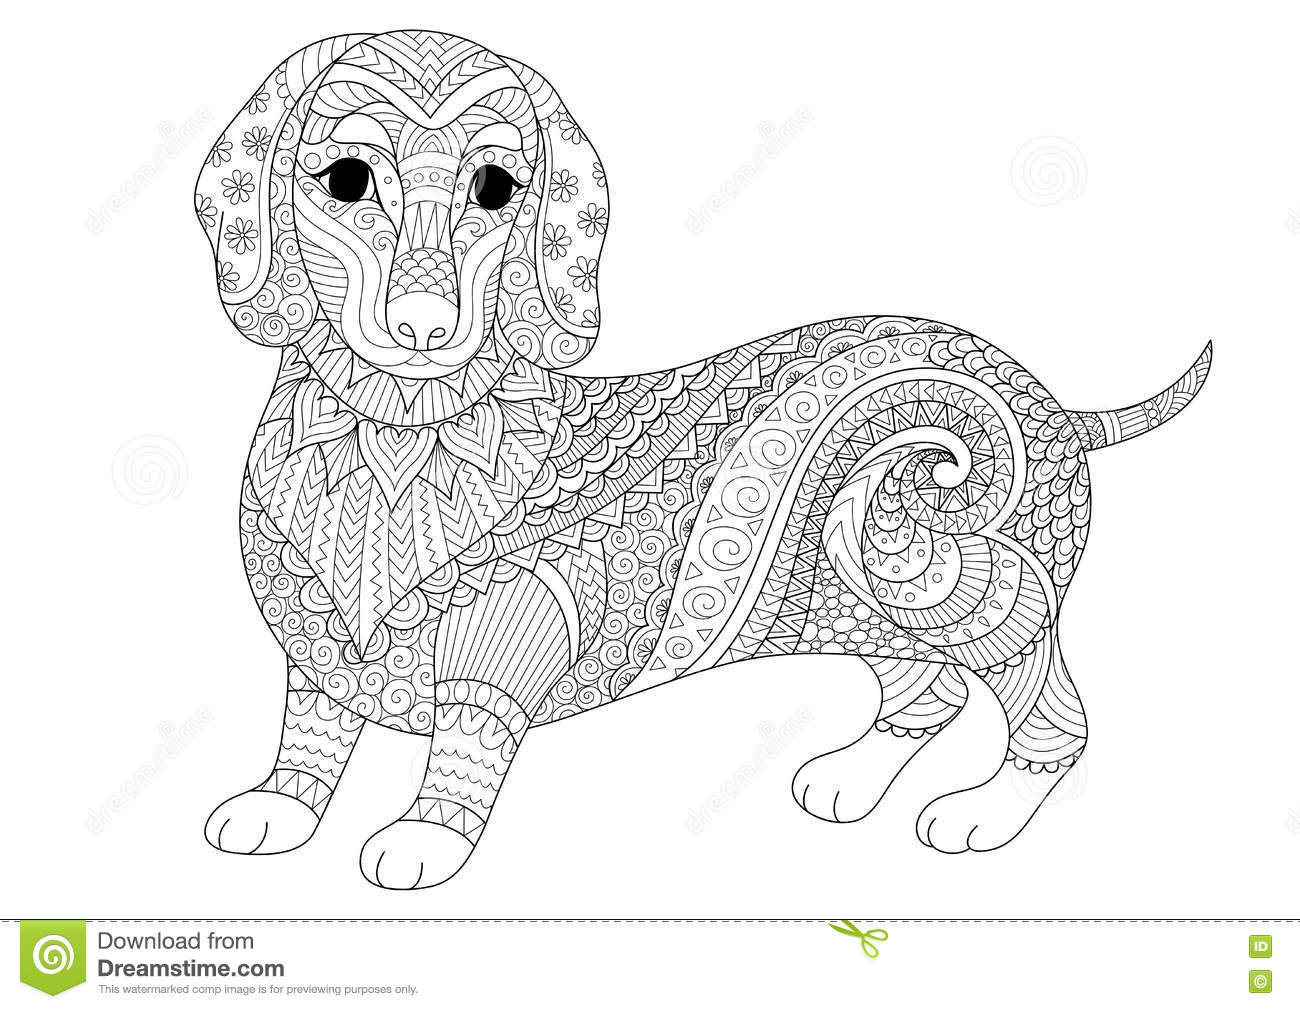 Best ideas about Dogs Coloring Pages For Adults . Save or Pin Zendoodle Design Dachshund Puppy For Adult Coloring Now.